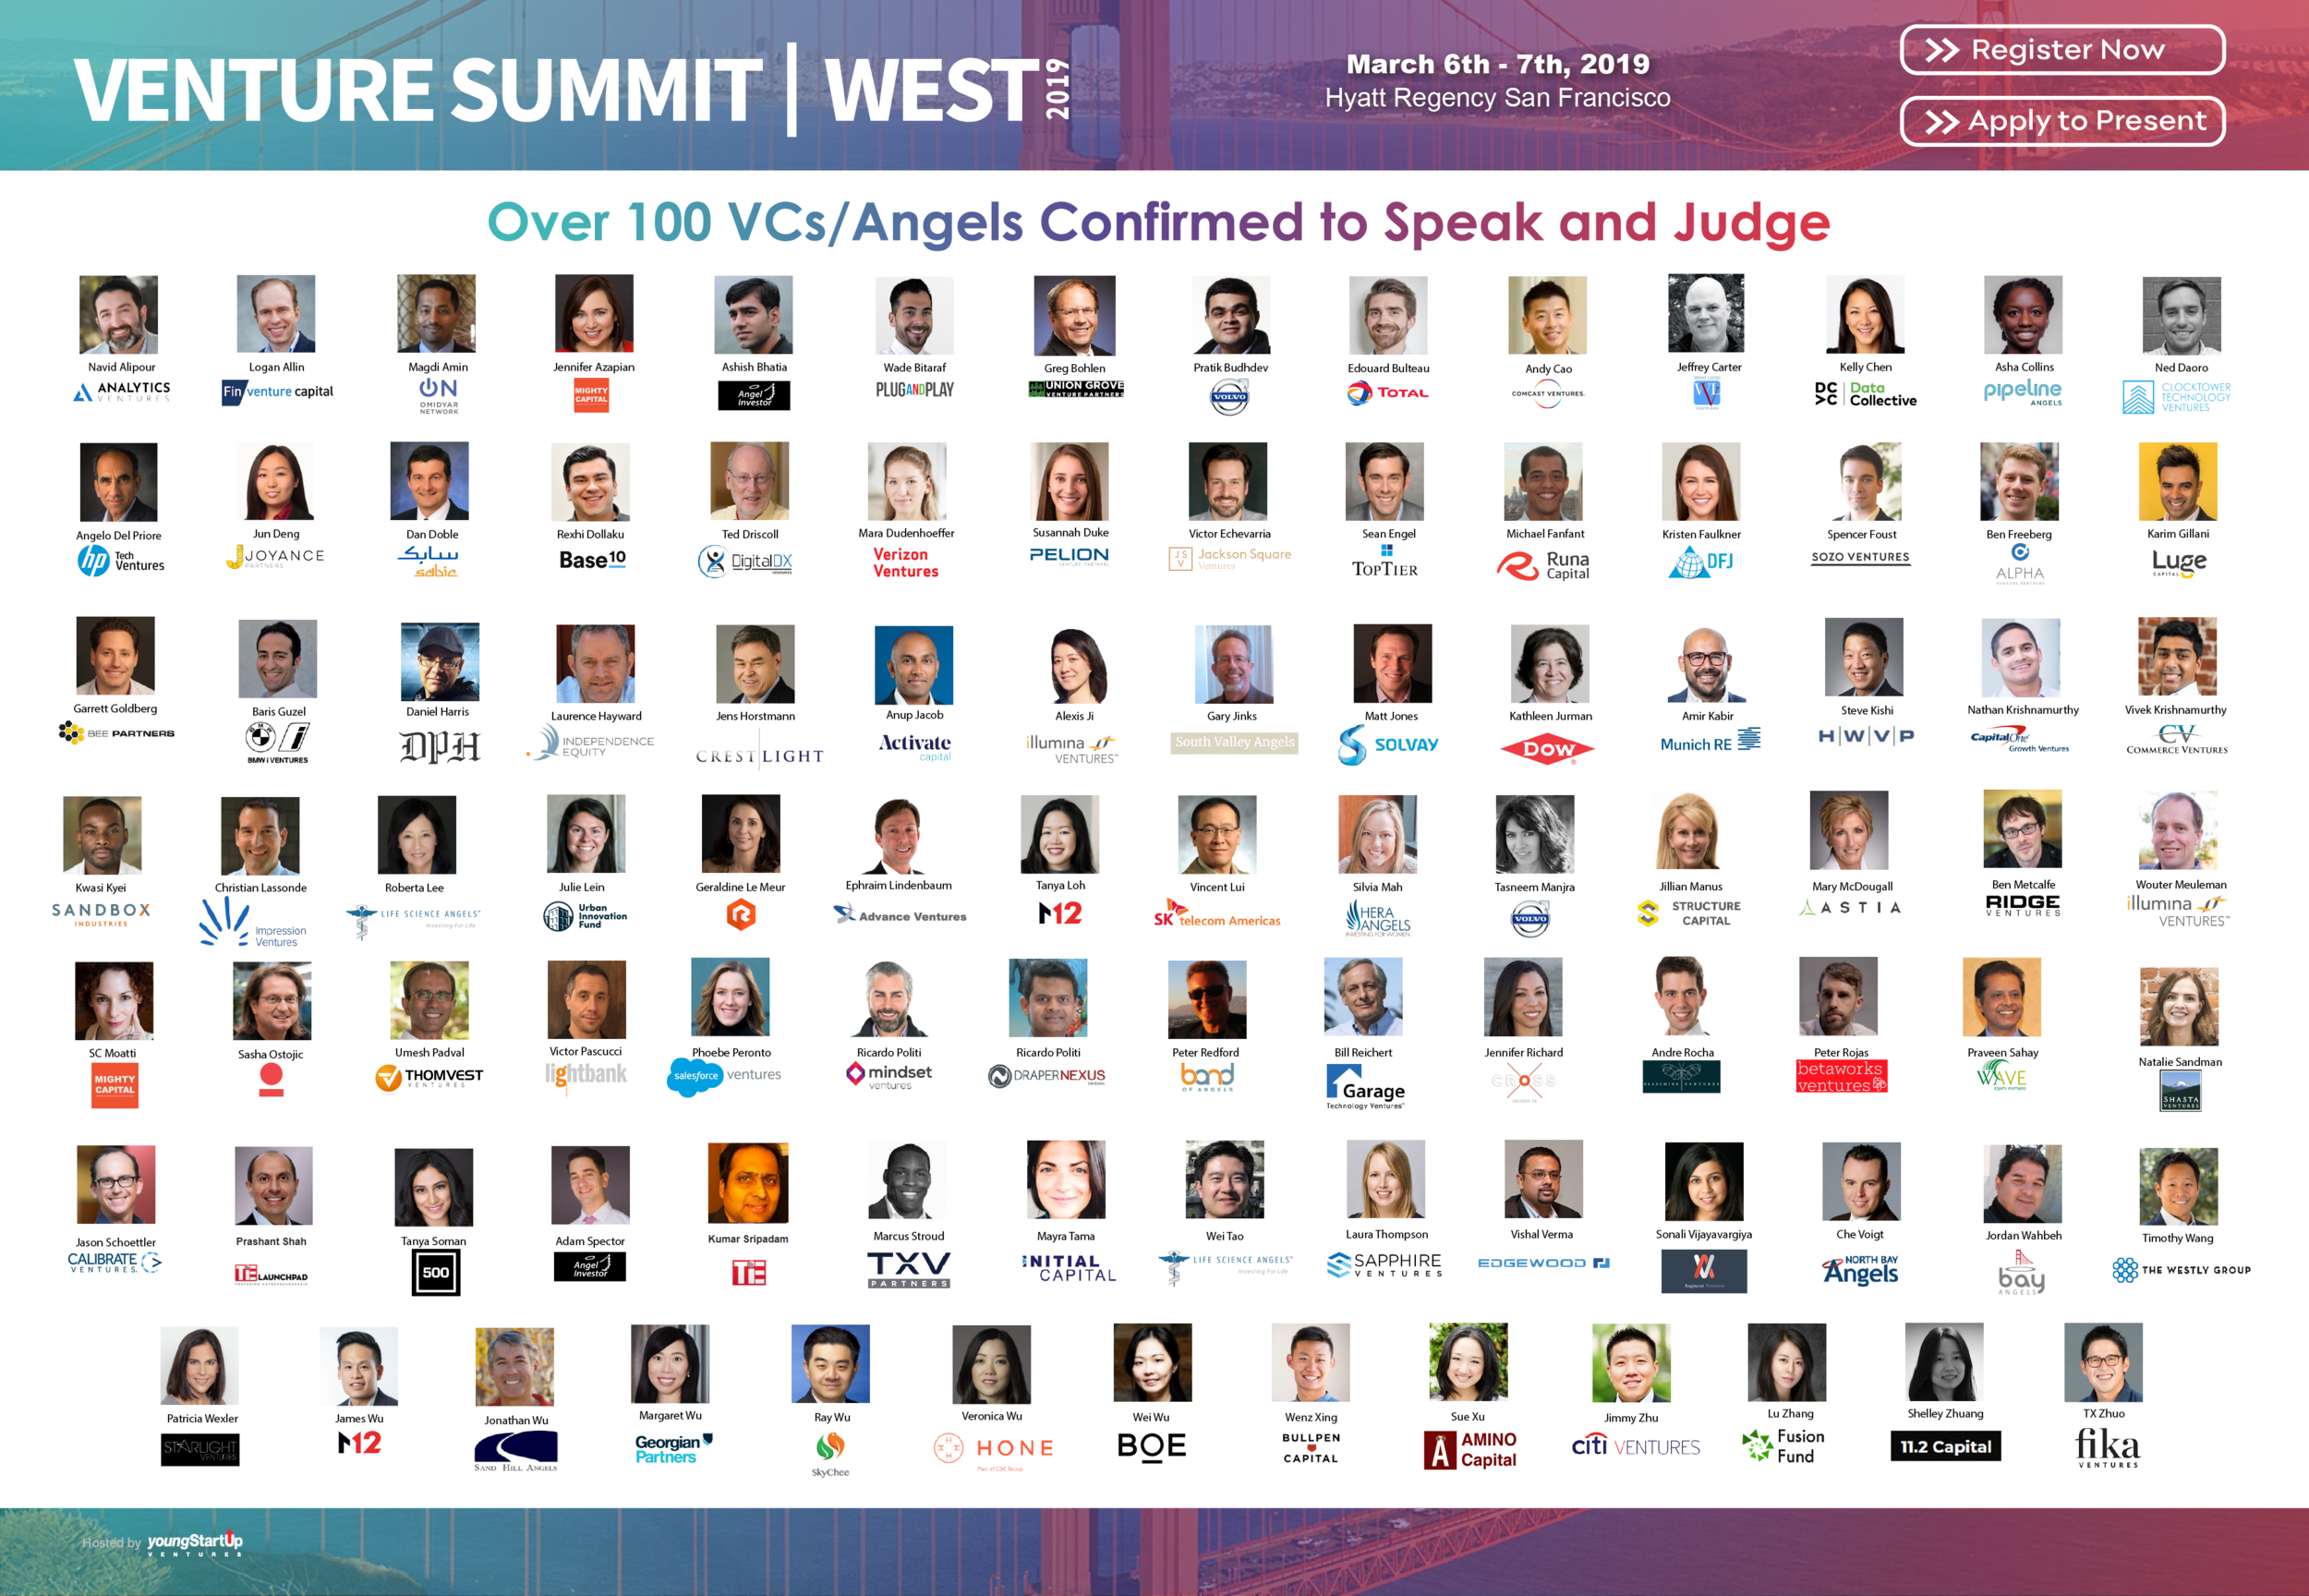 VSW19 Over 100 VCs Angels confirmed to speak and judge-02.png